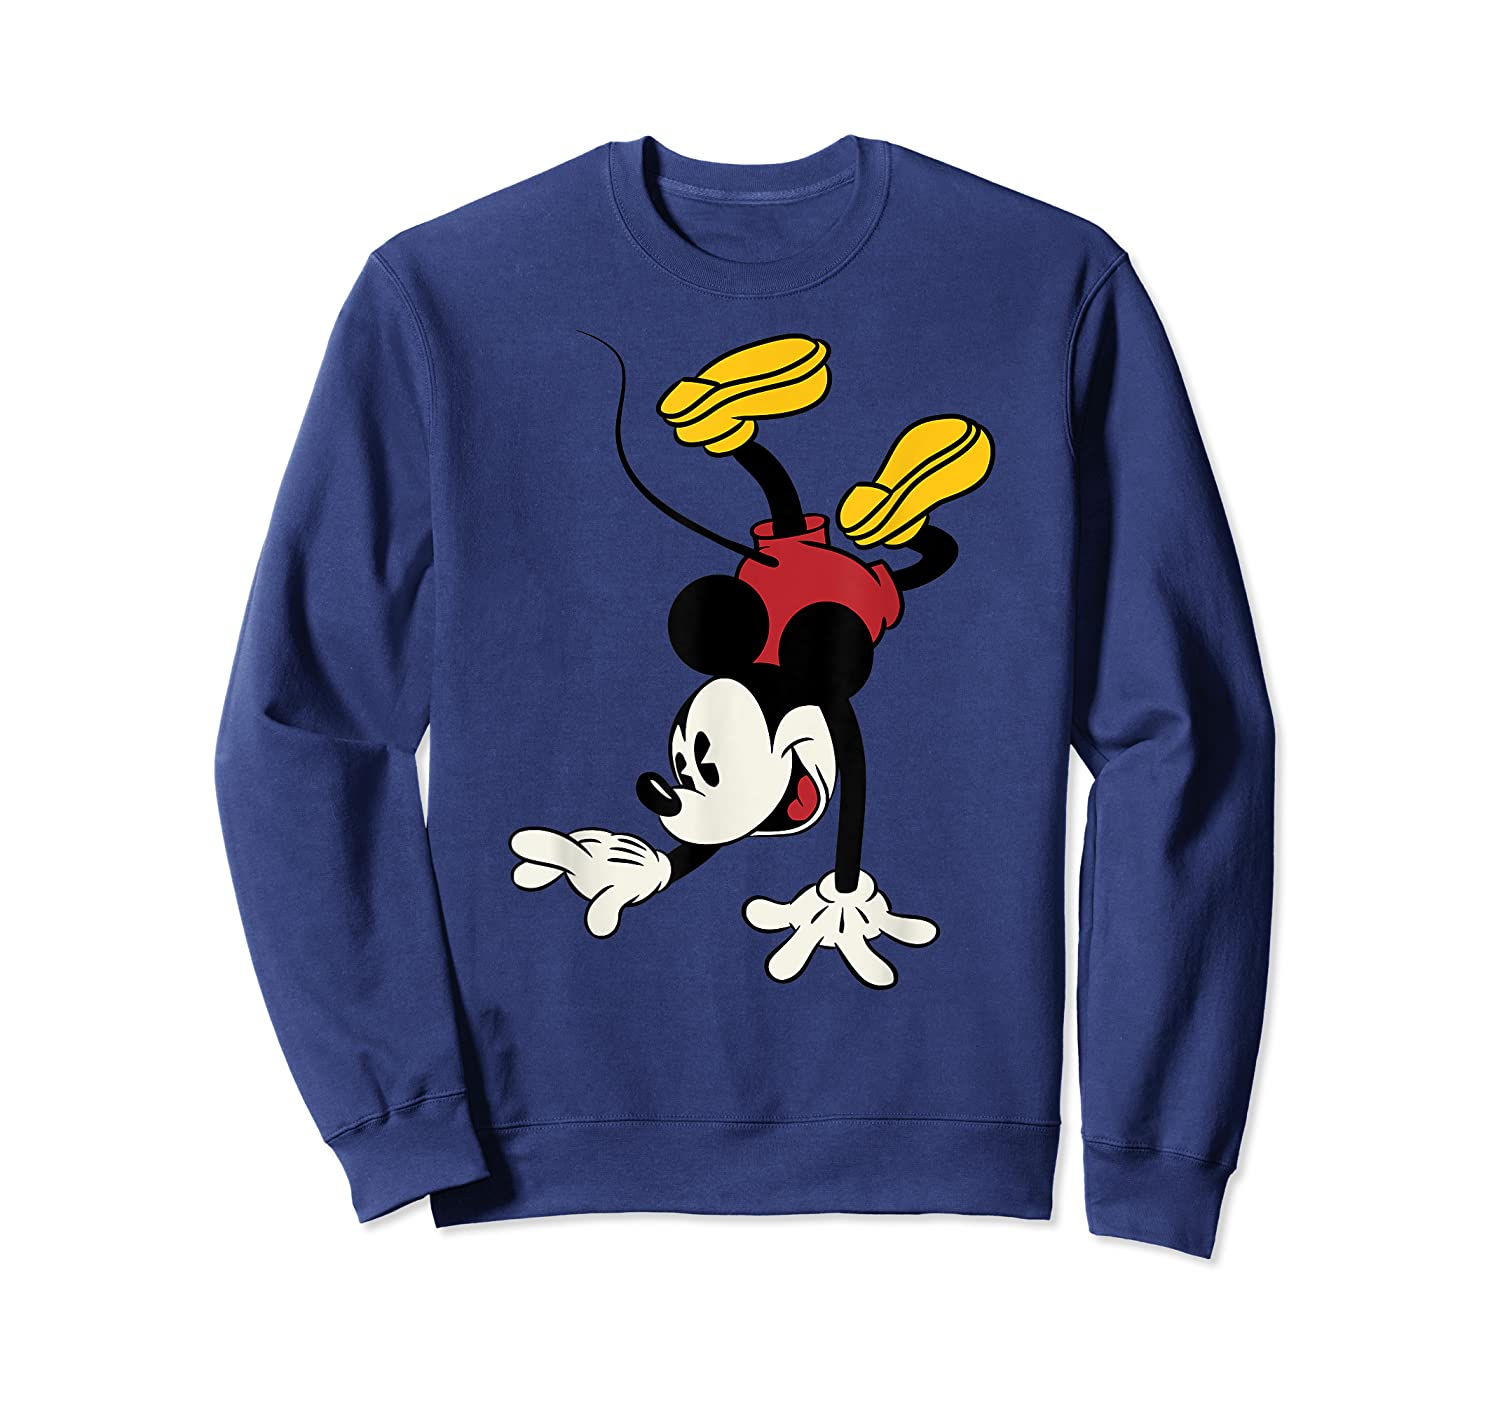 Disney Mickey Mouse Handstand T Shirt Crewneck Sweater